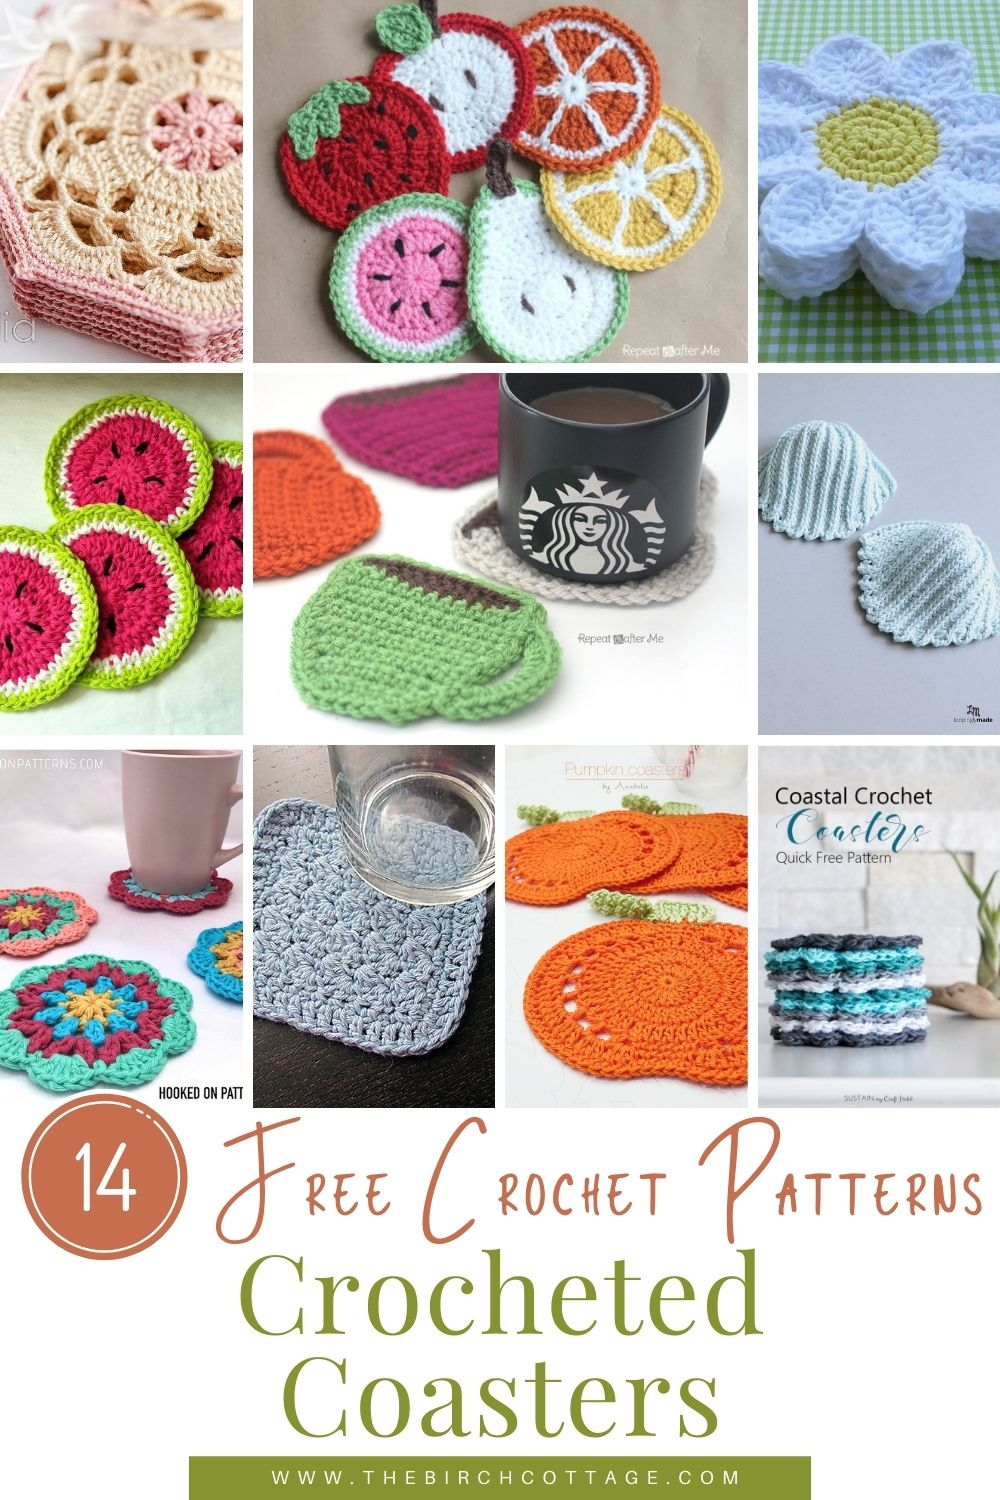 14 crocheted coaster patterns